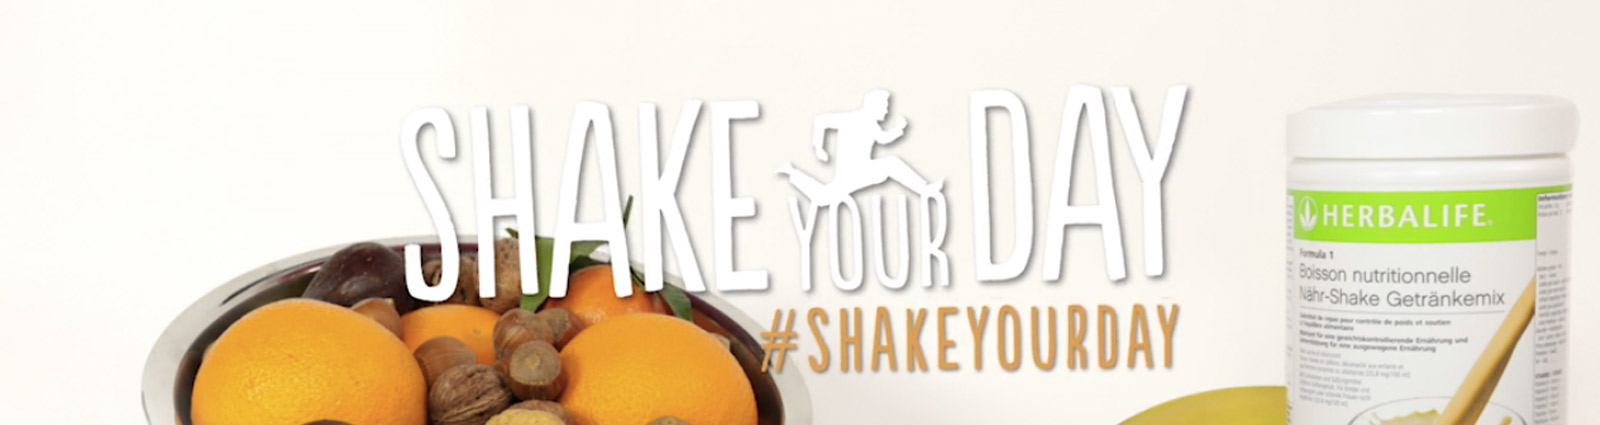 herbalife shake your day